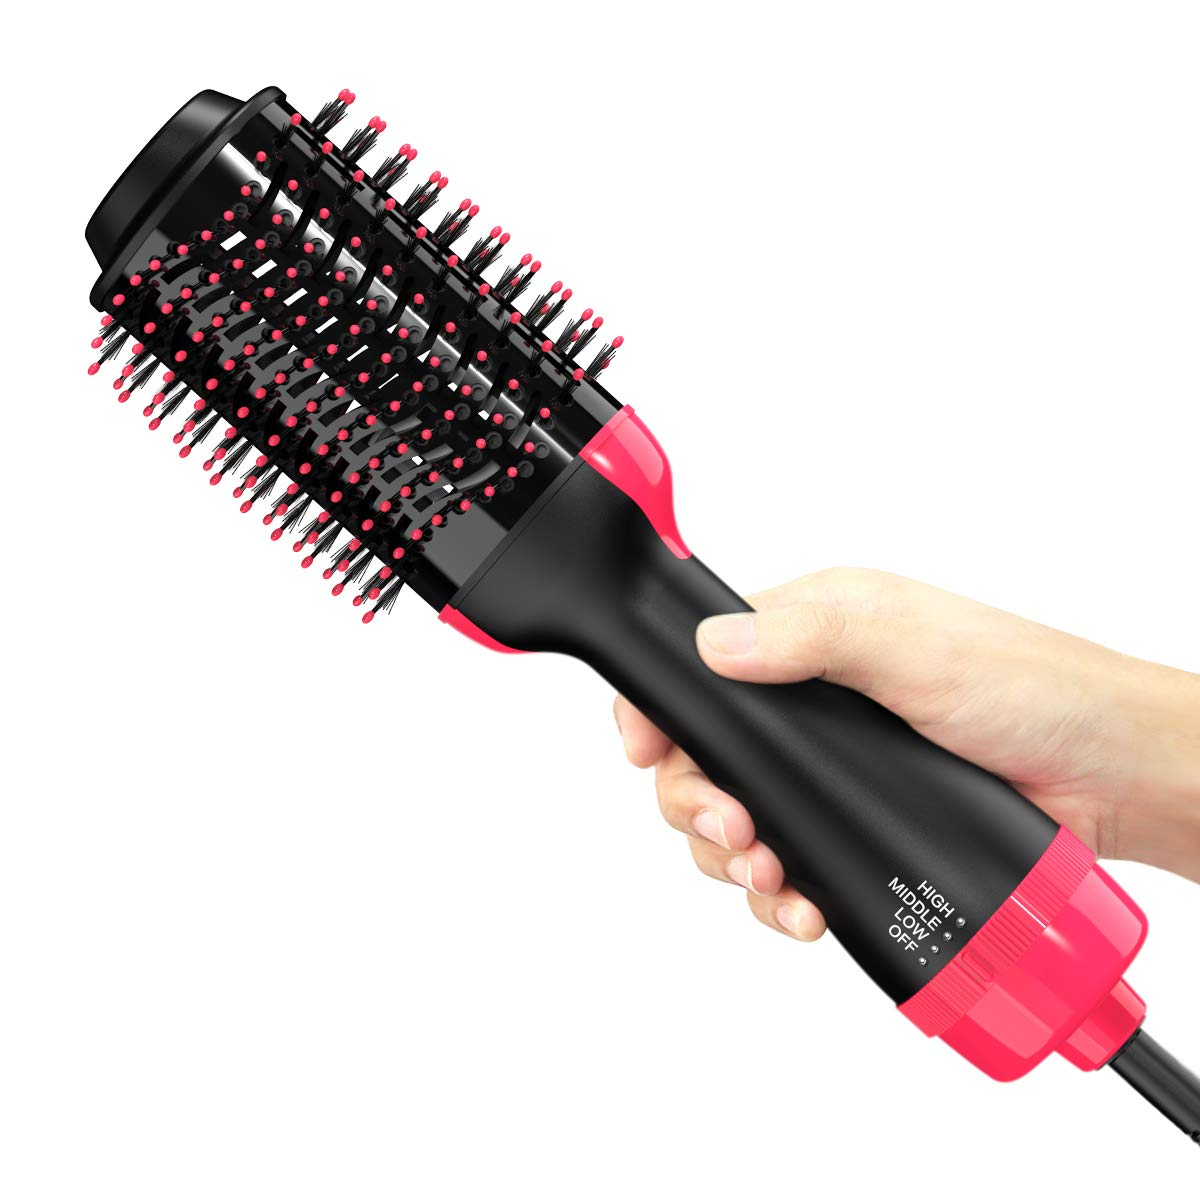 Hair Dryer Brush, NEXT BEAUTY One Step Hair Dryer and Styler, Hot Air Brush One Step Hair Dryer and Volumizer for Hair Drying and Straingtening by NEXT BEAUTY